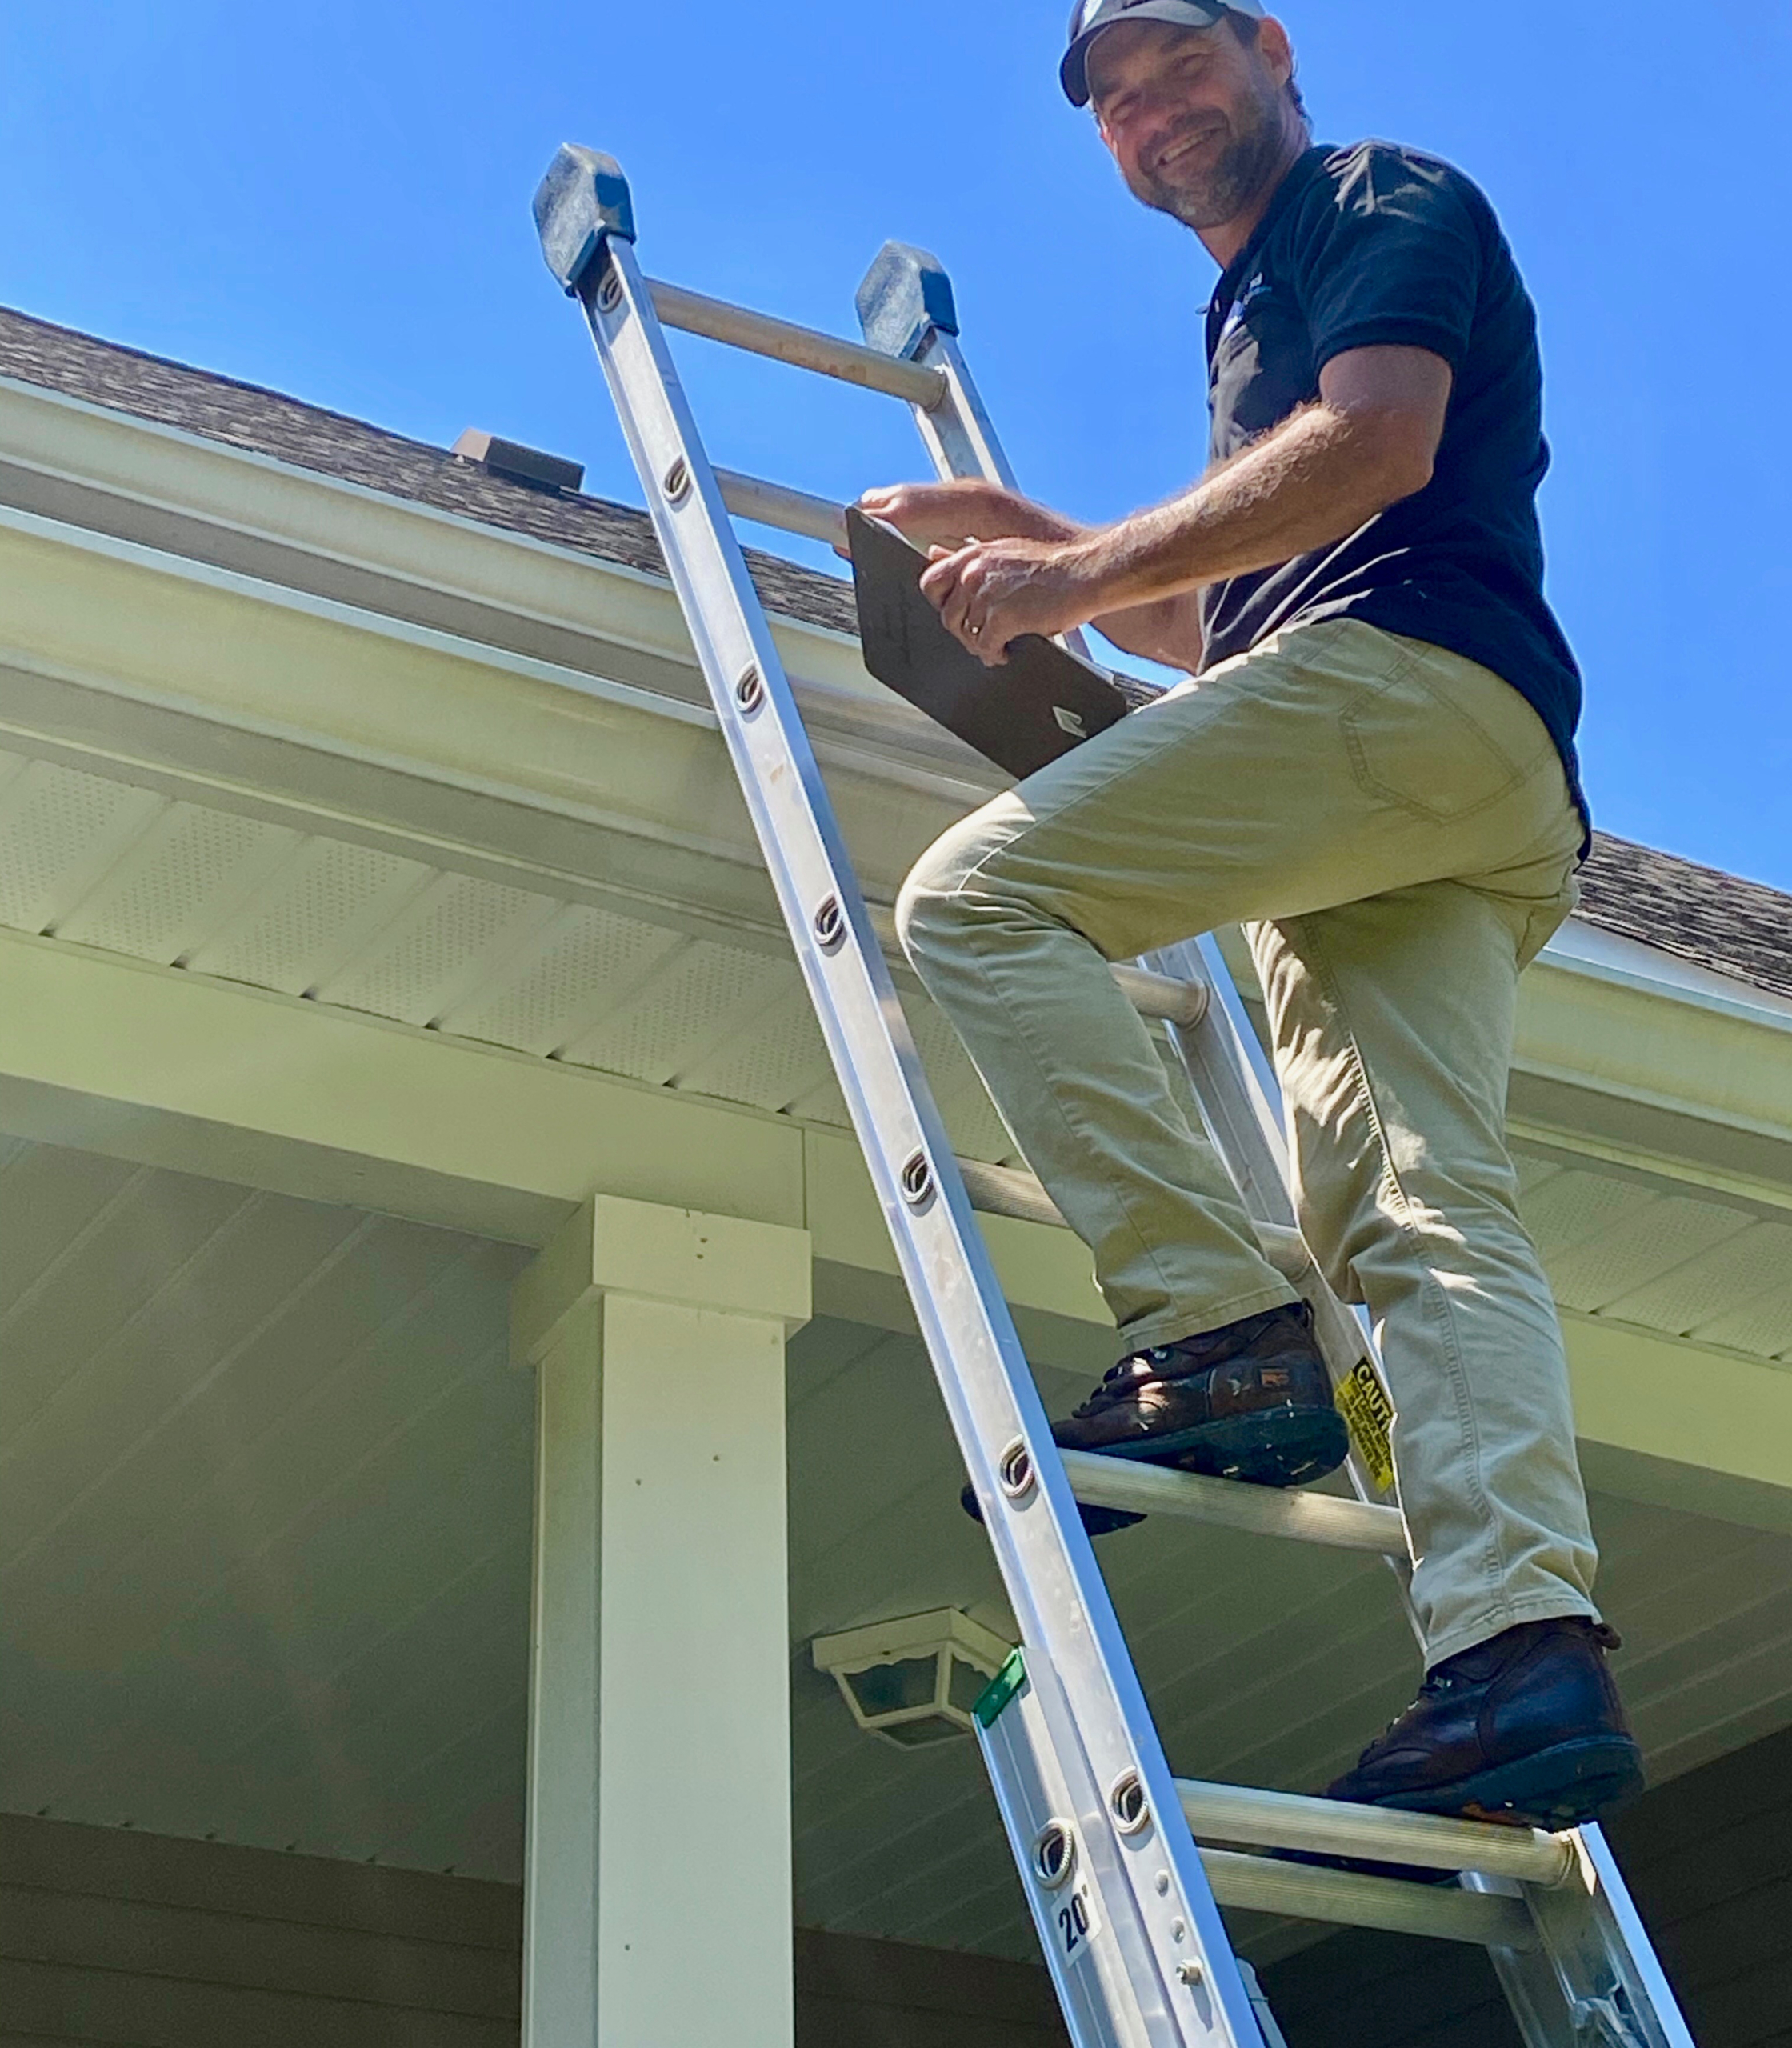 Owner of Universal Home Inspections, Mike Makely, inspecting the roof of a home.